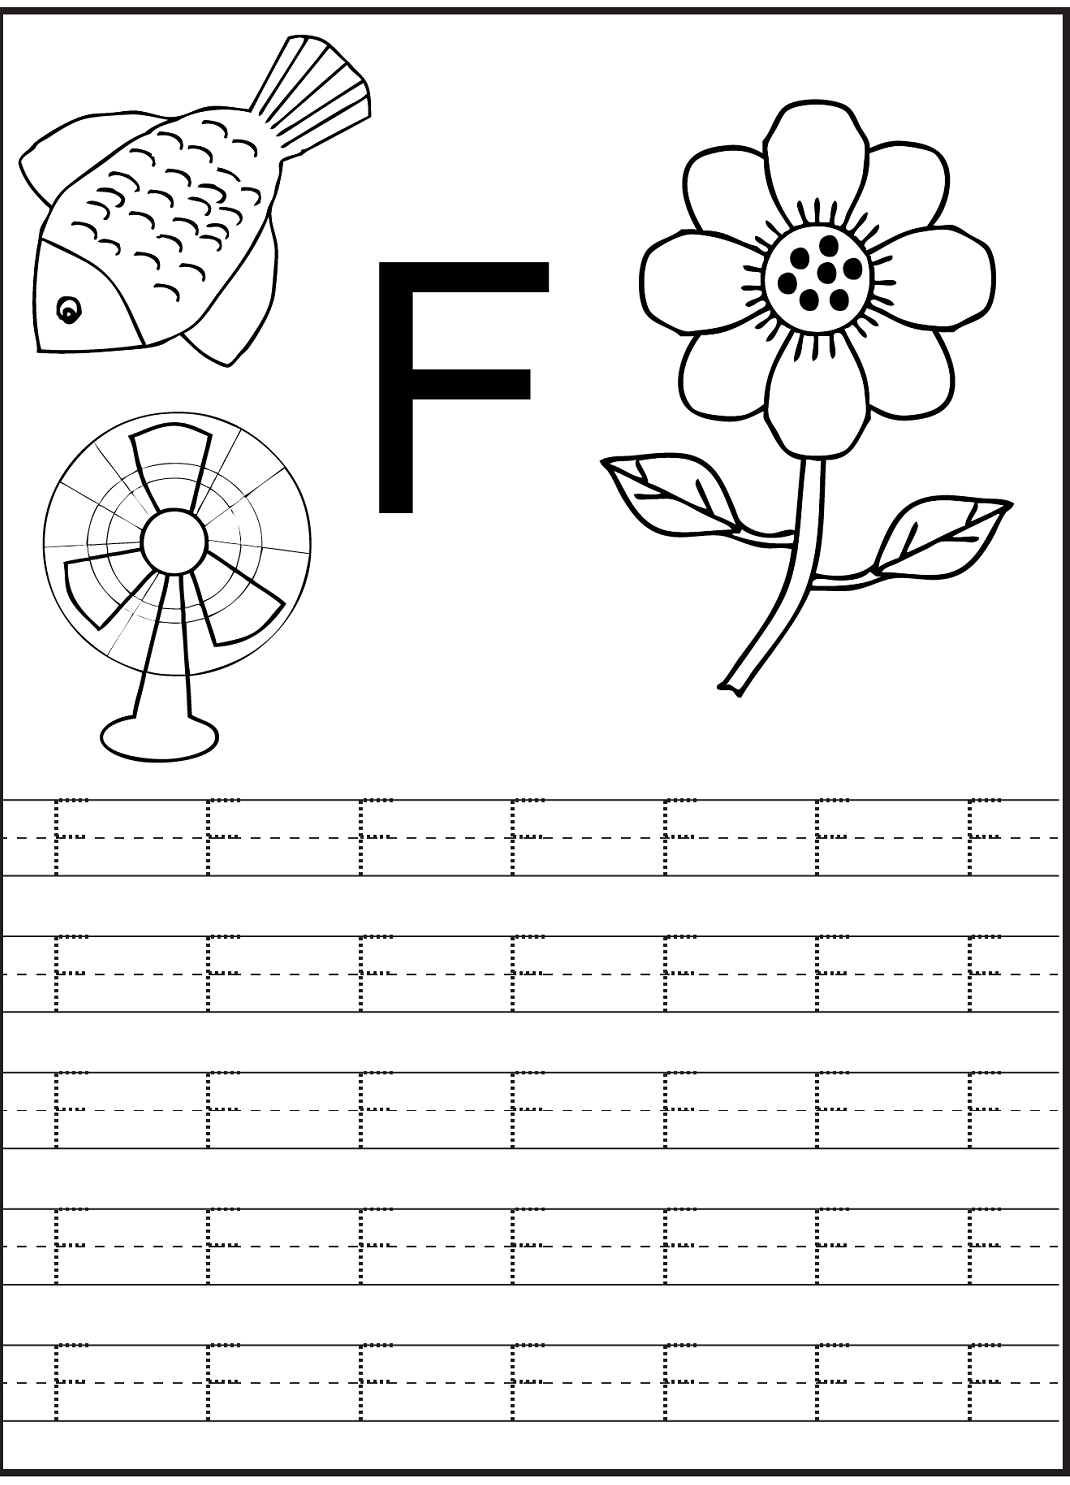 Letter F Worksheet For Preschool And Kindergarten | Alphabet